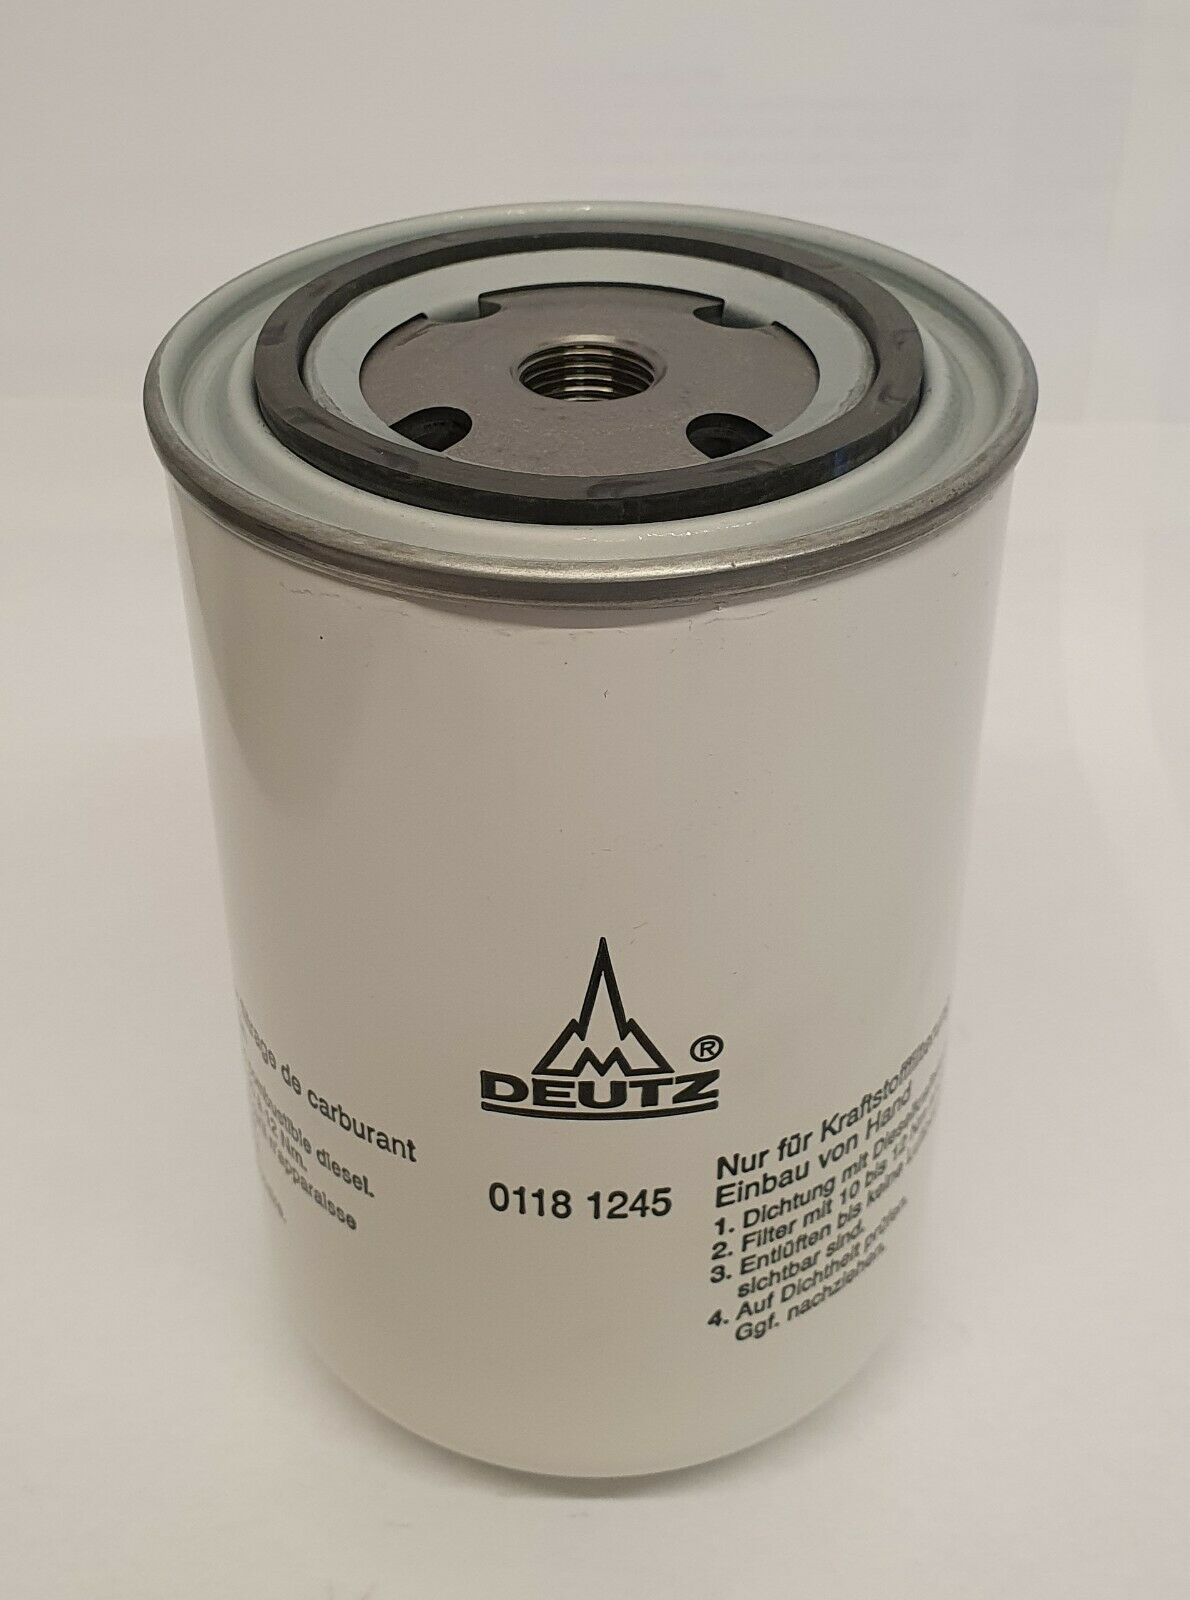 01181245 Genuine Deutz Fuel Filter 1013 1015 2012 2013 2015 Engines Filters 1795 1 Of 2free Shipping See More